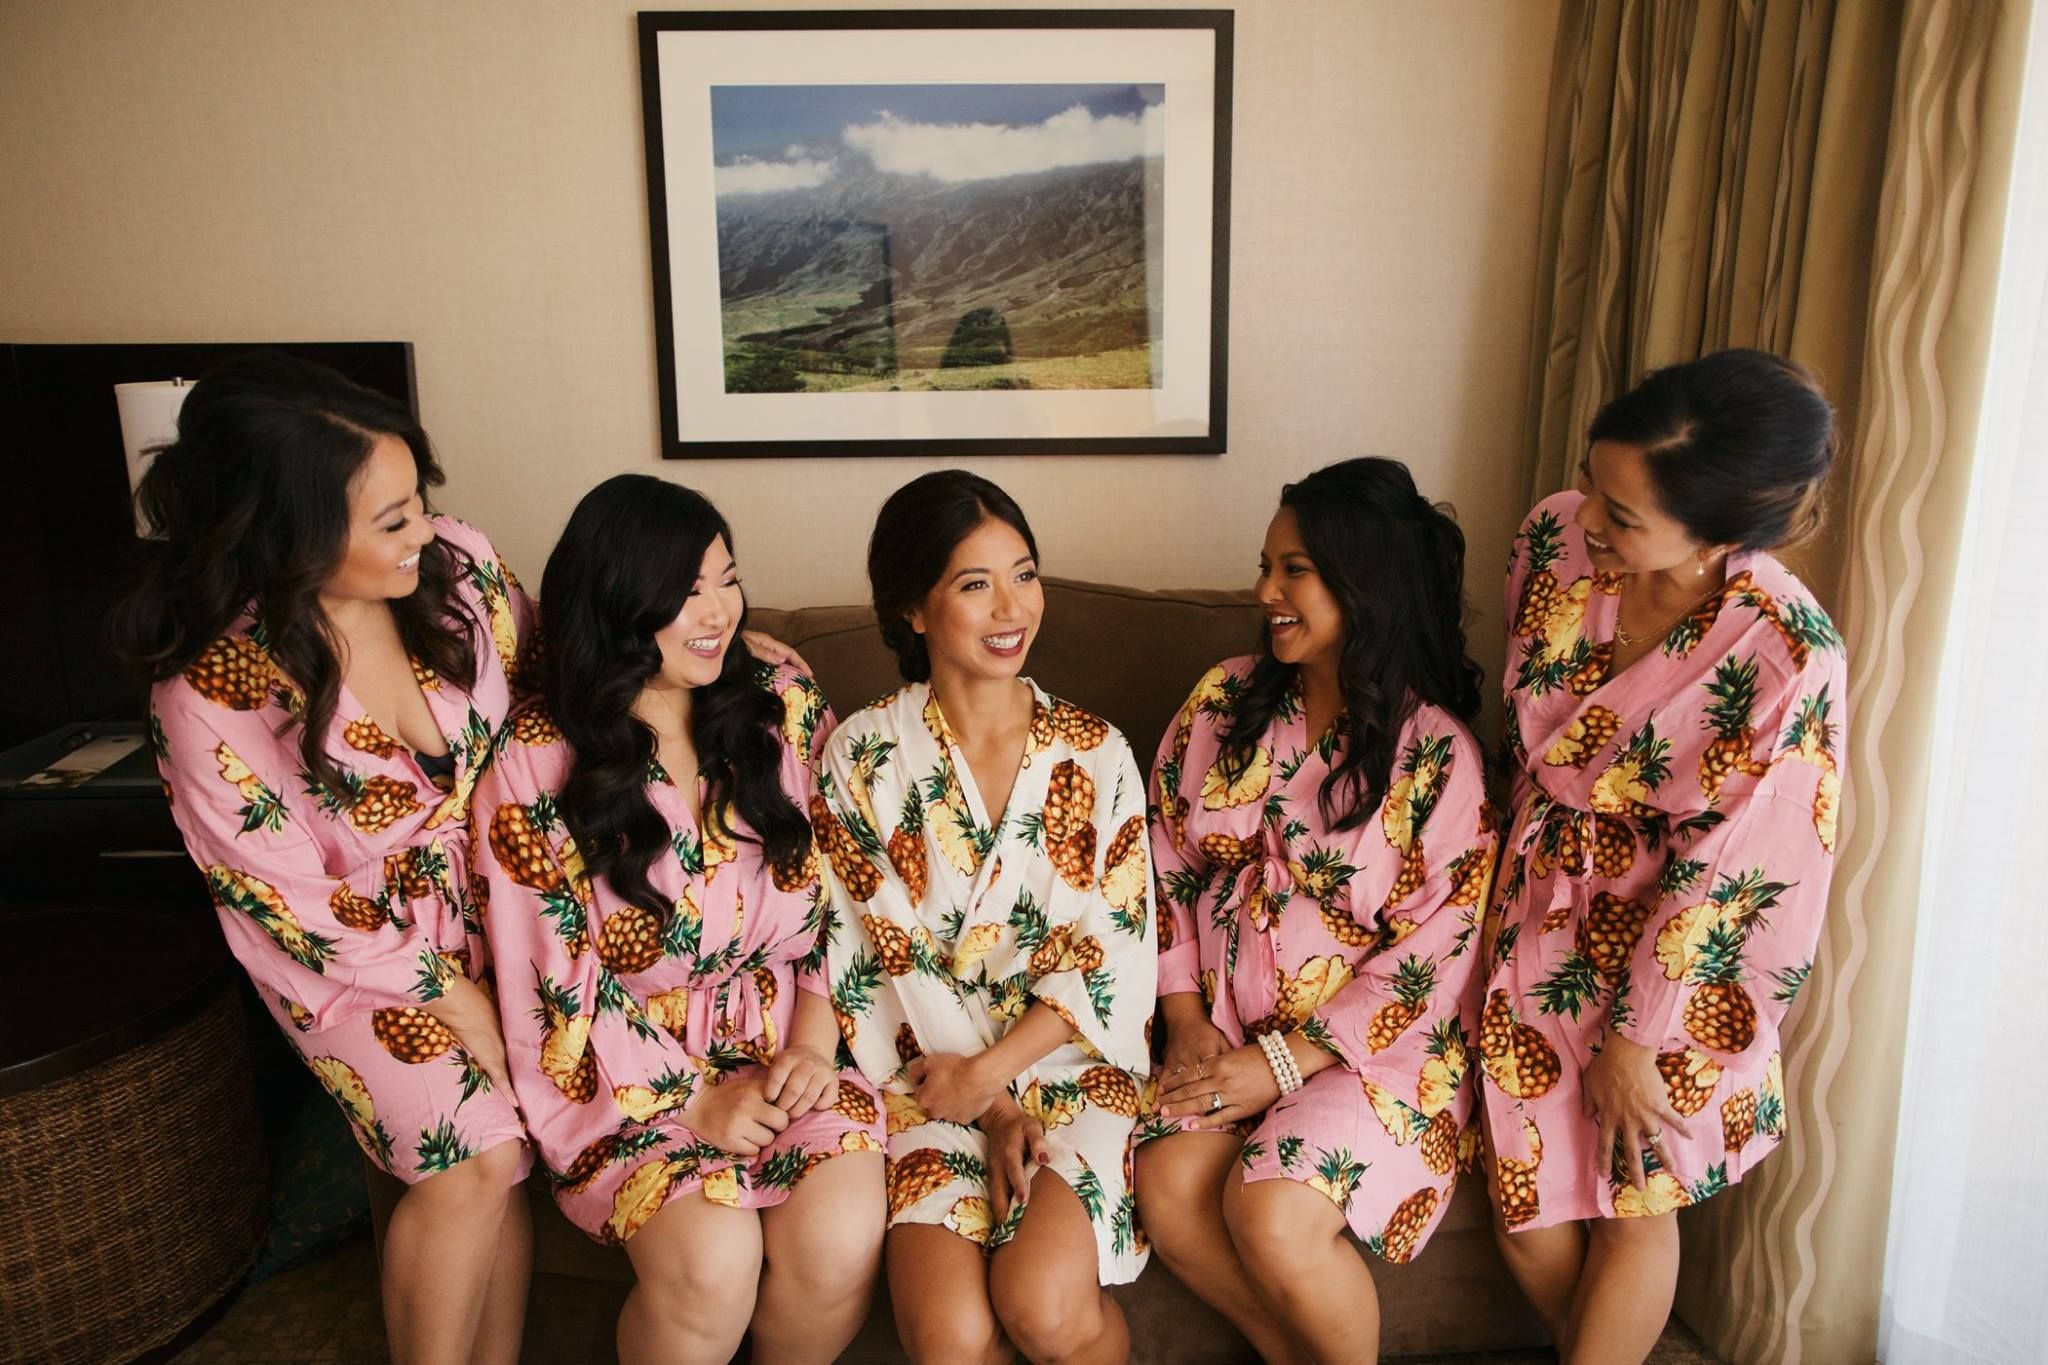 Pineapple bride and bridesmaids getting ready robes - Anna Kim Photography d4654ca3f